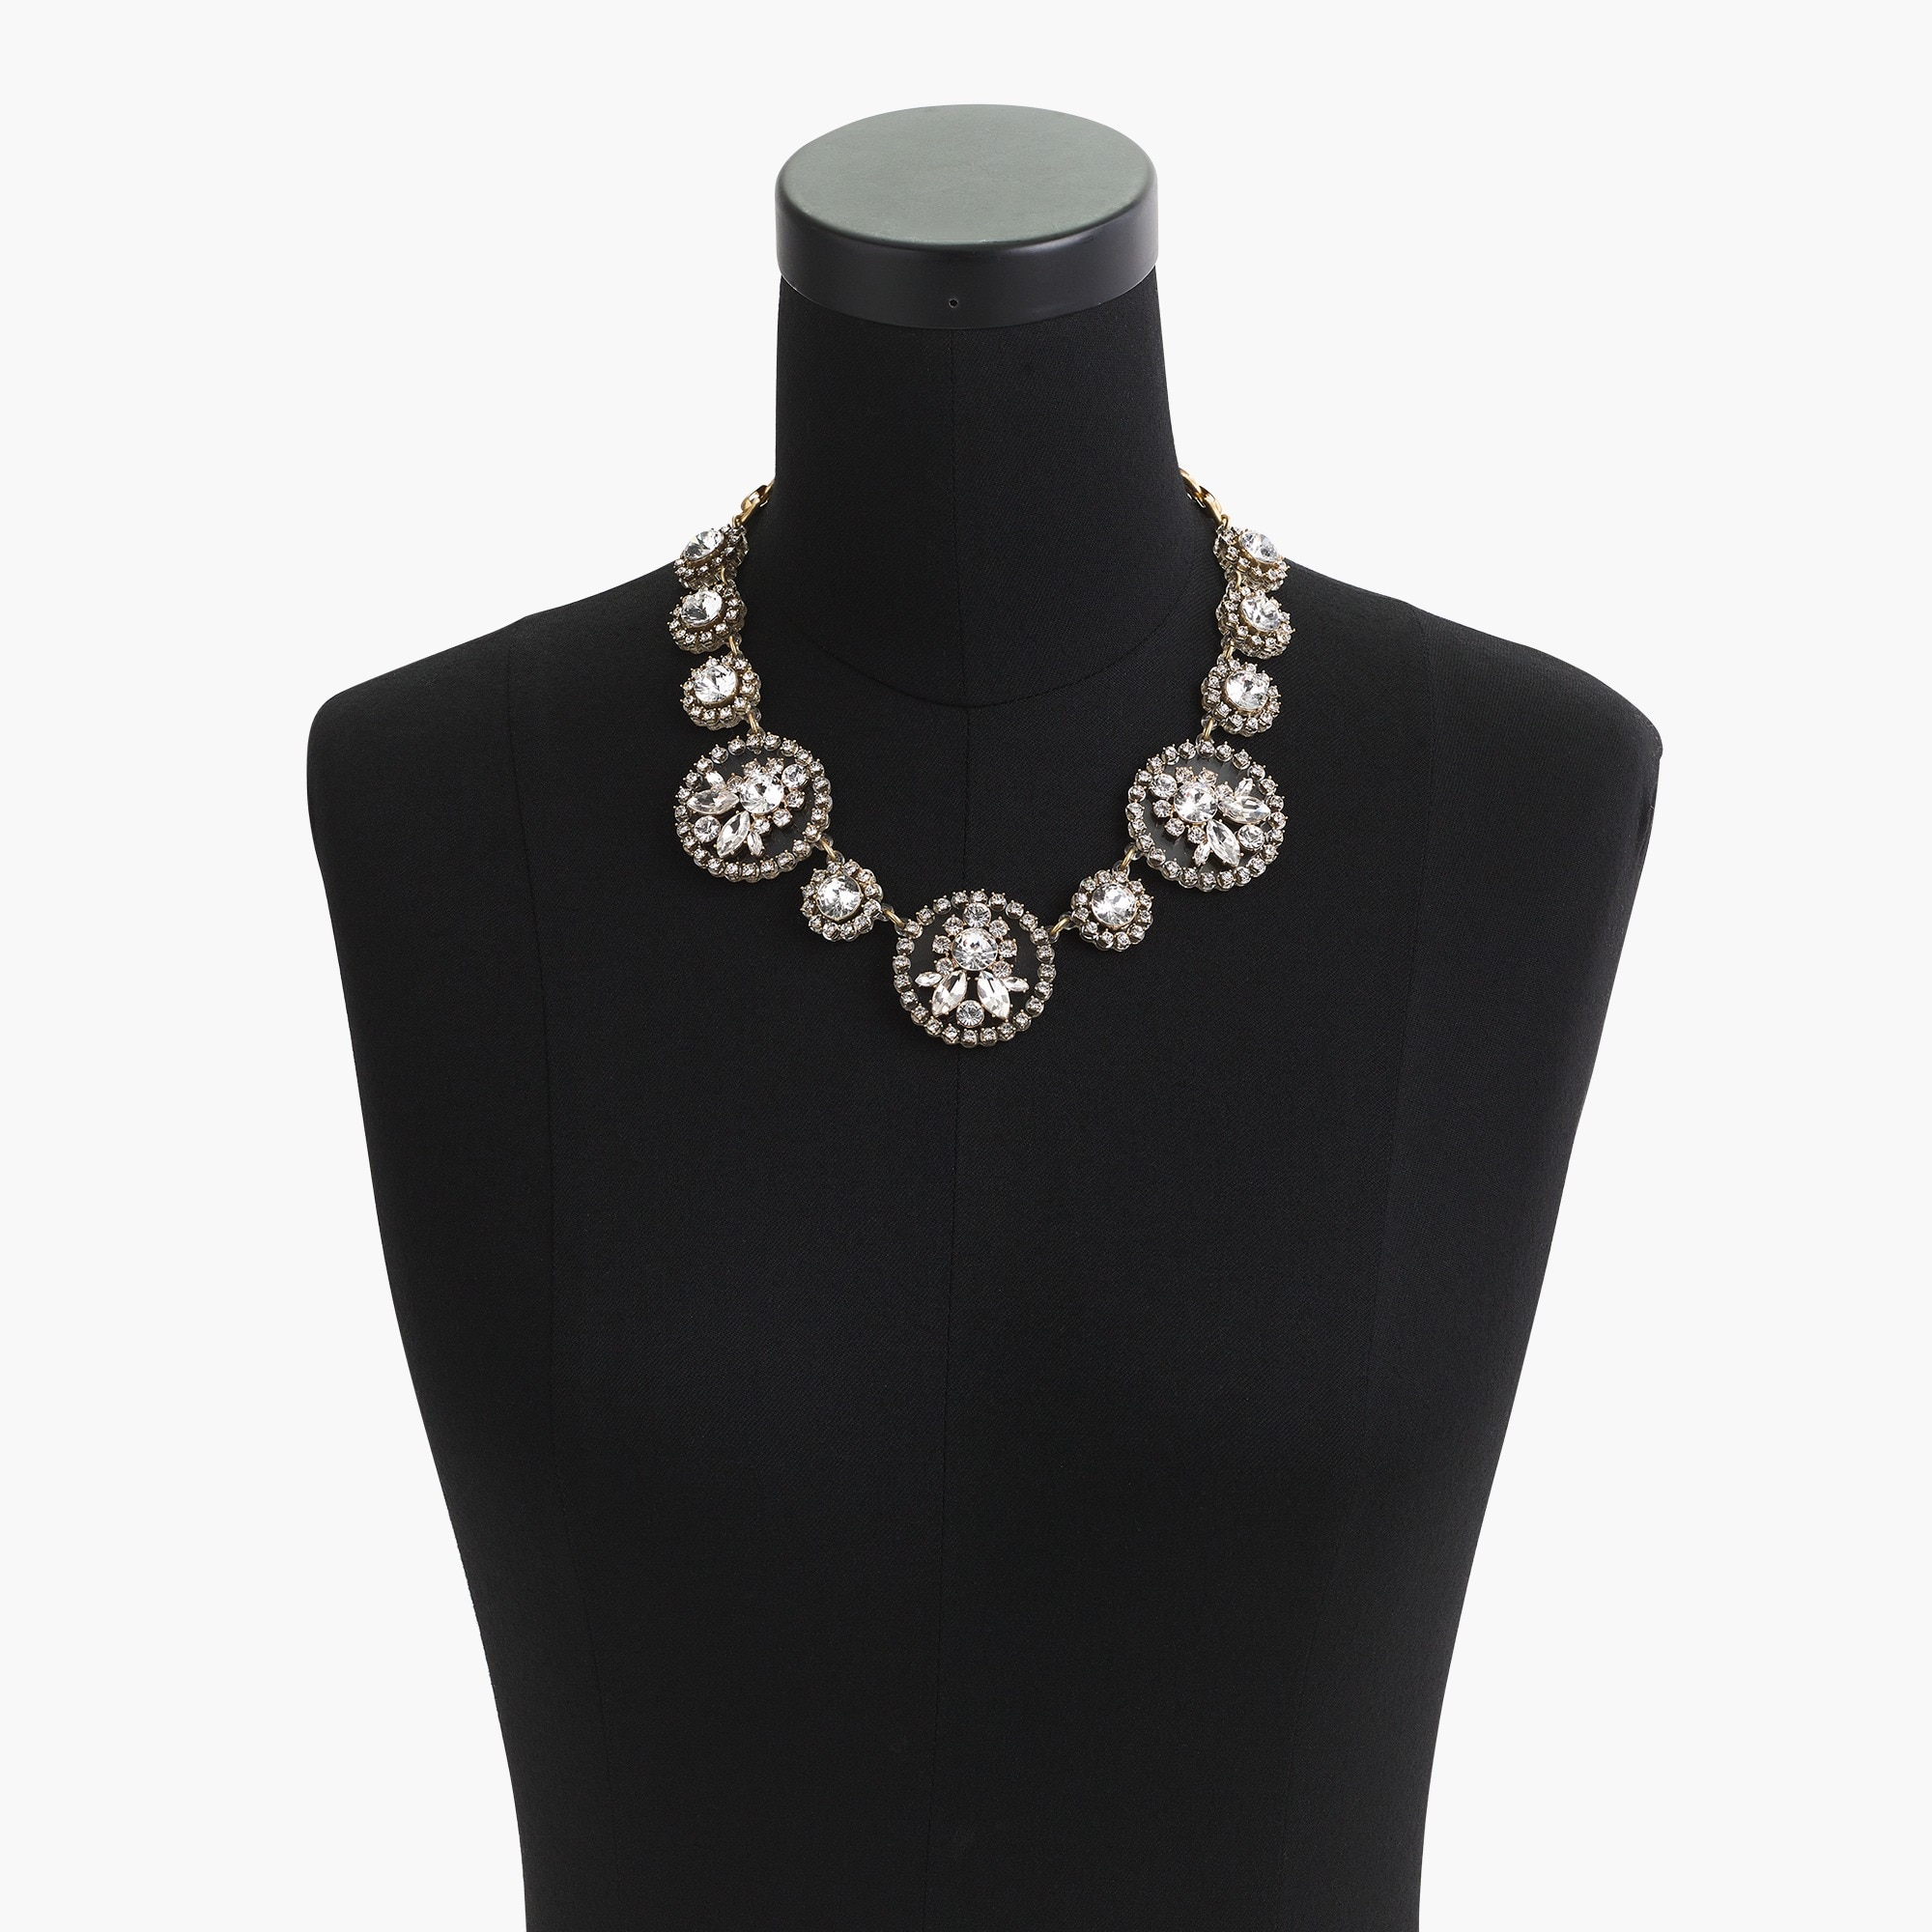 crystal and acetate statement necklace : women statement